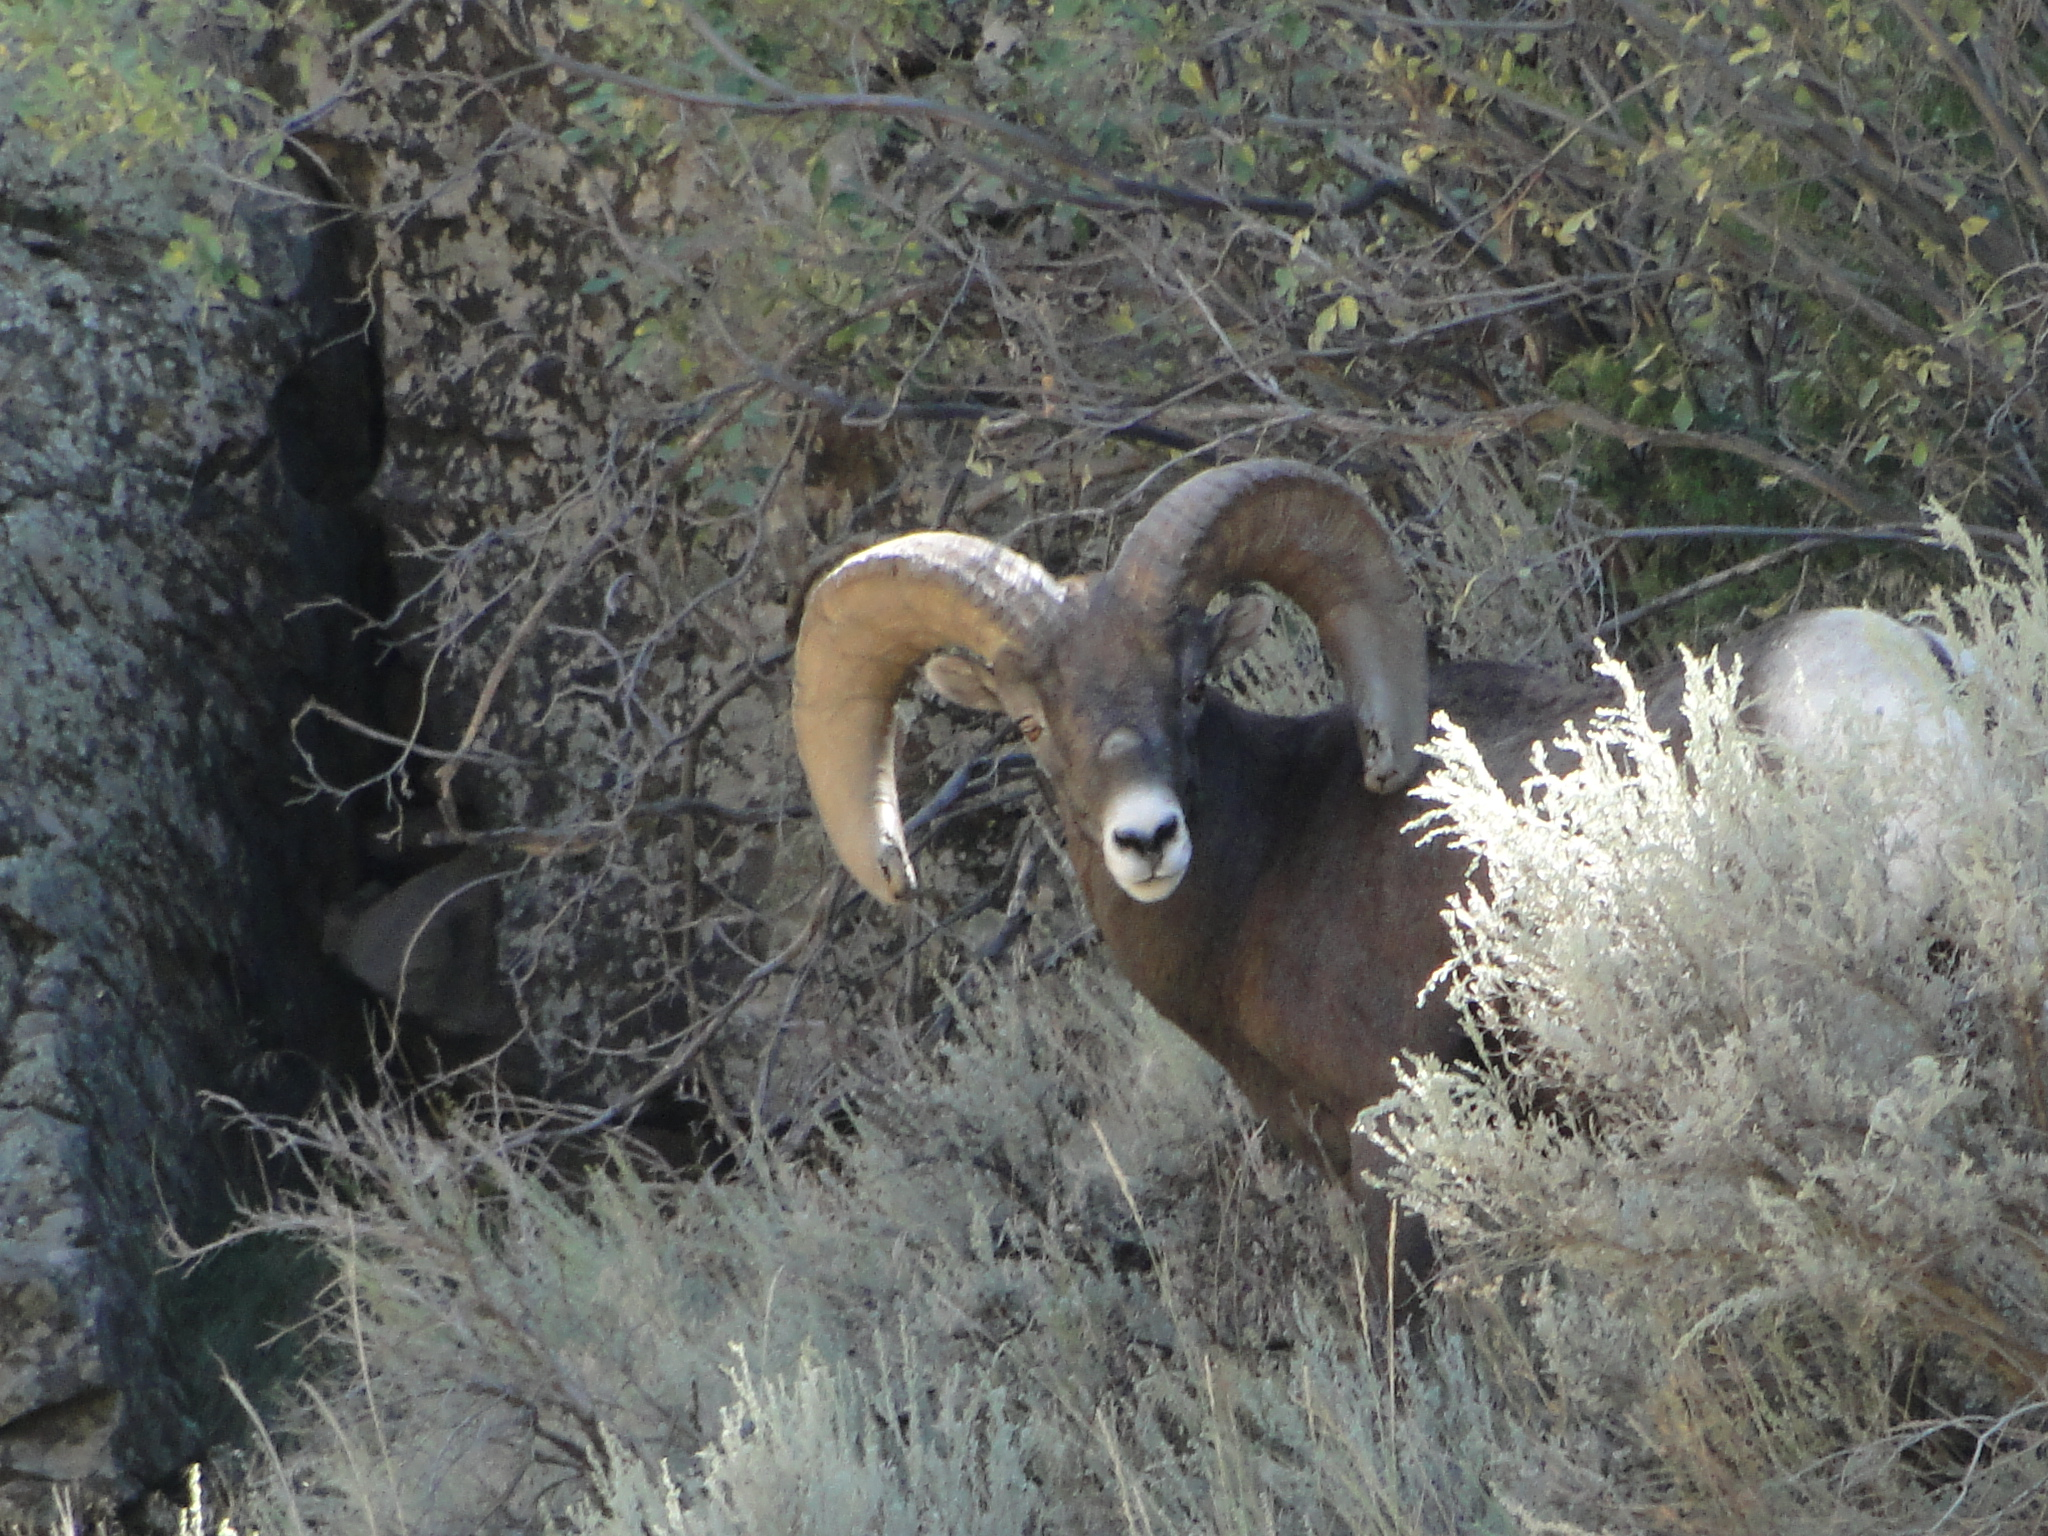 Bighorn sheep in Taos Canyon